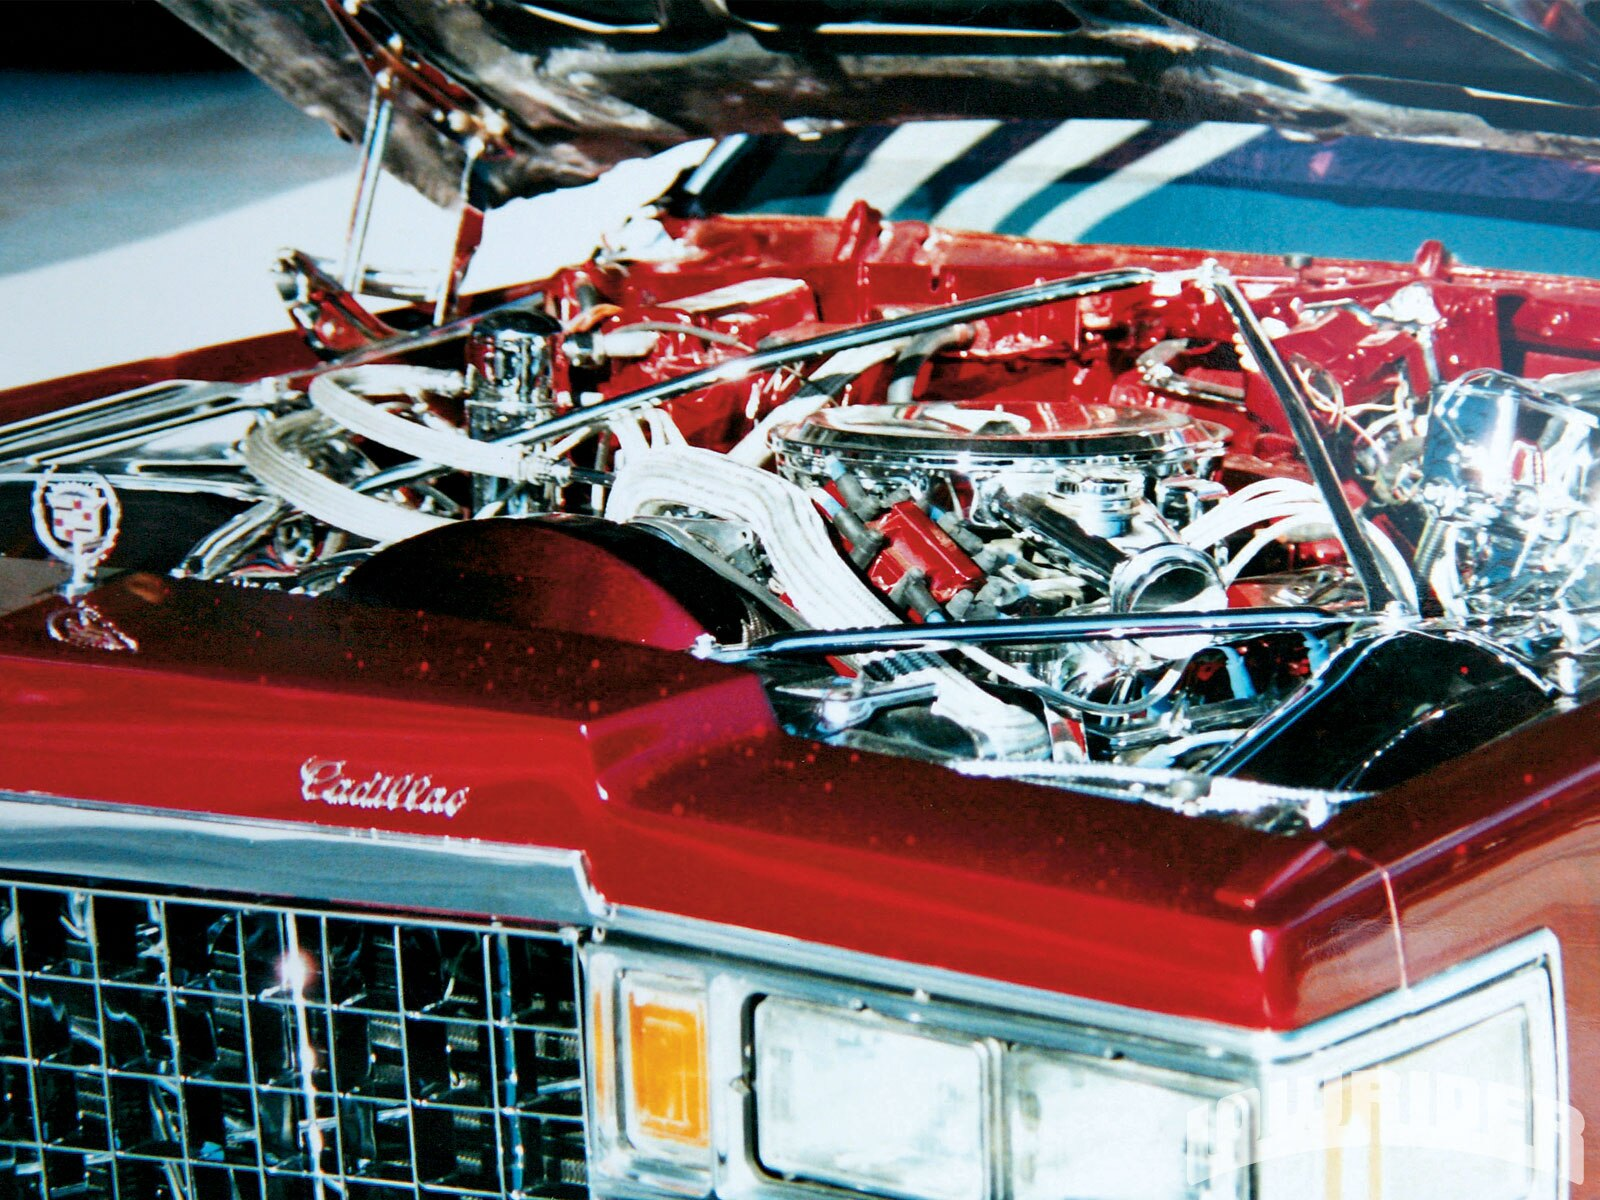 lrmp-1010-05-o-1978-cadillac-coupe-de-ville-engine-bay1